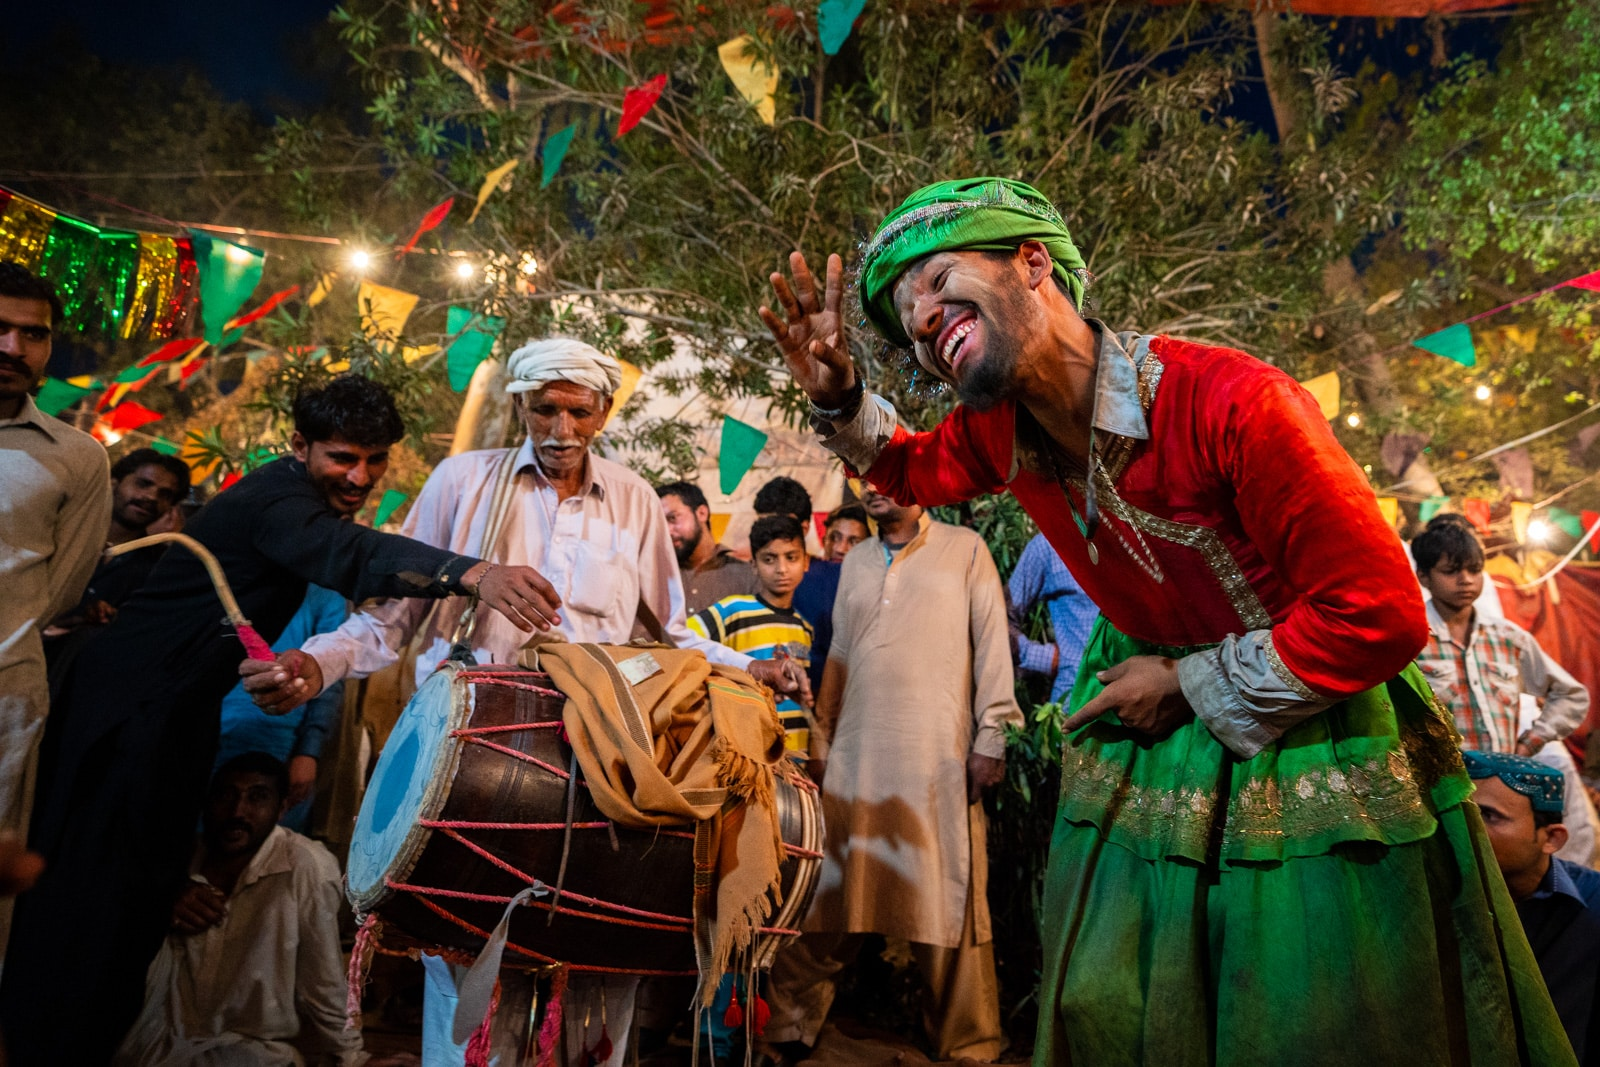 Sufi man dancing dhamal at the Mela Chiraghan in Lahore, Pakistan